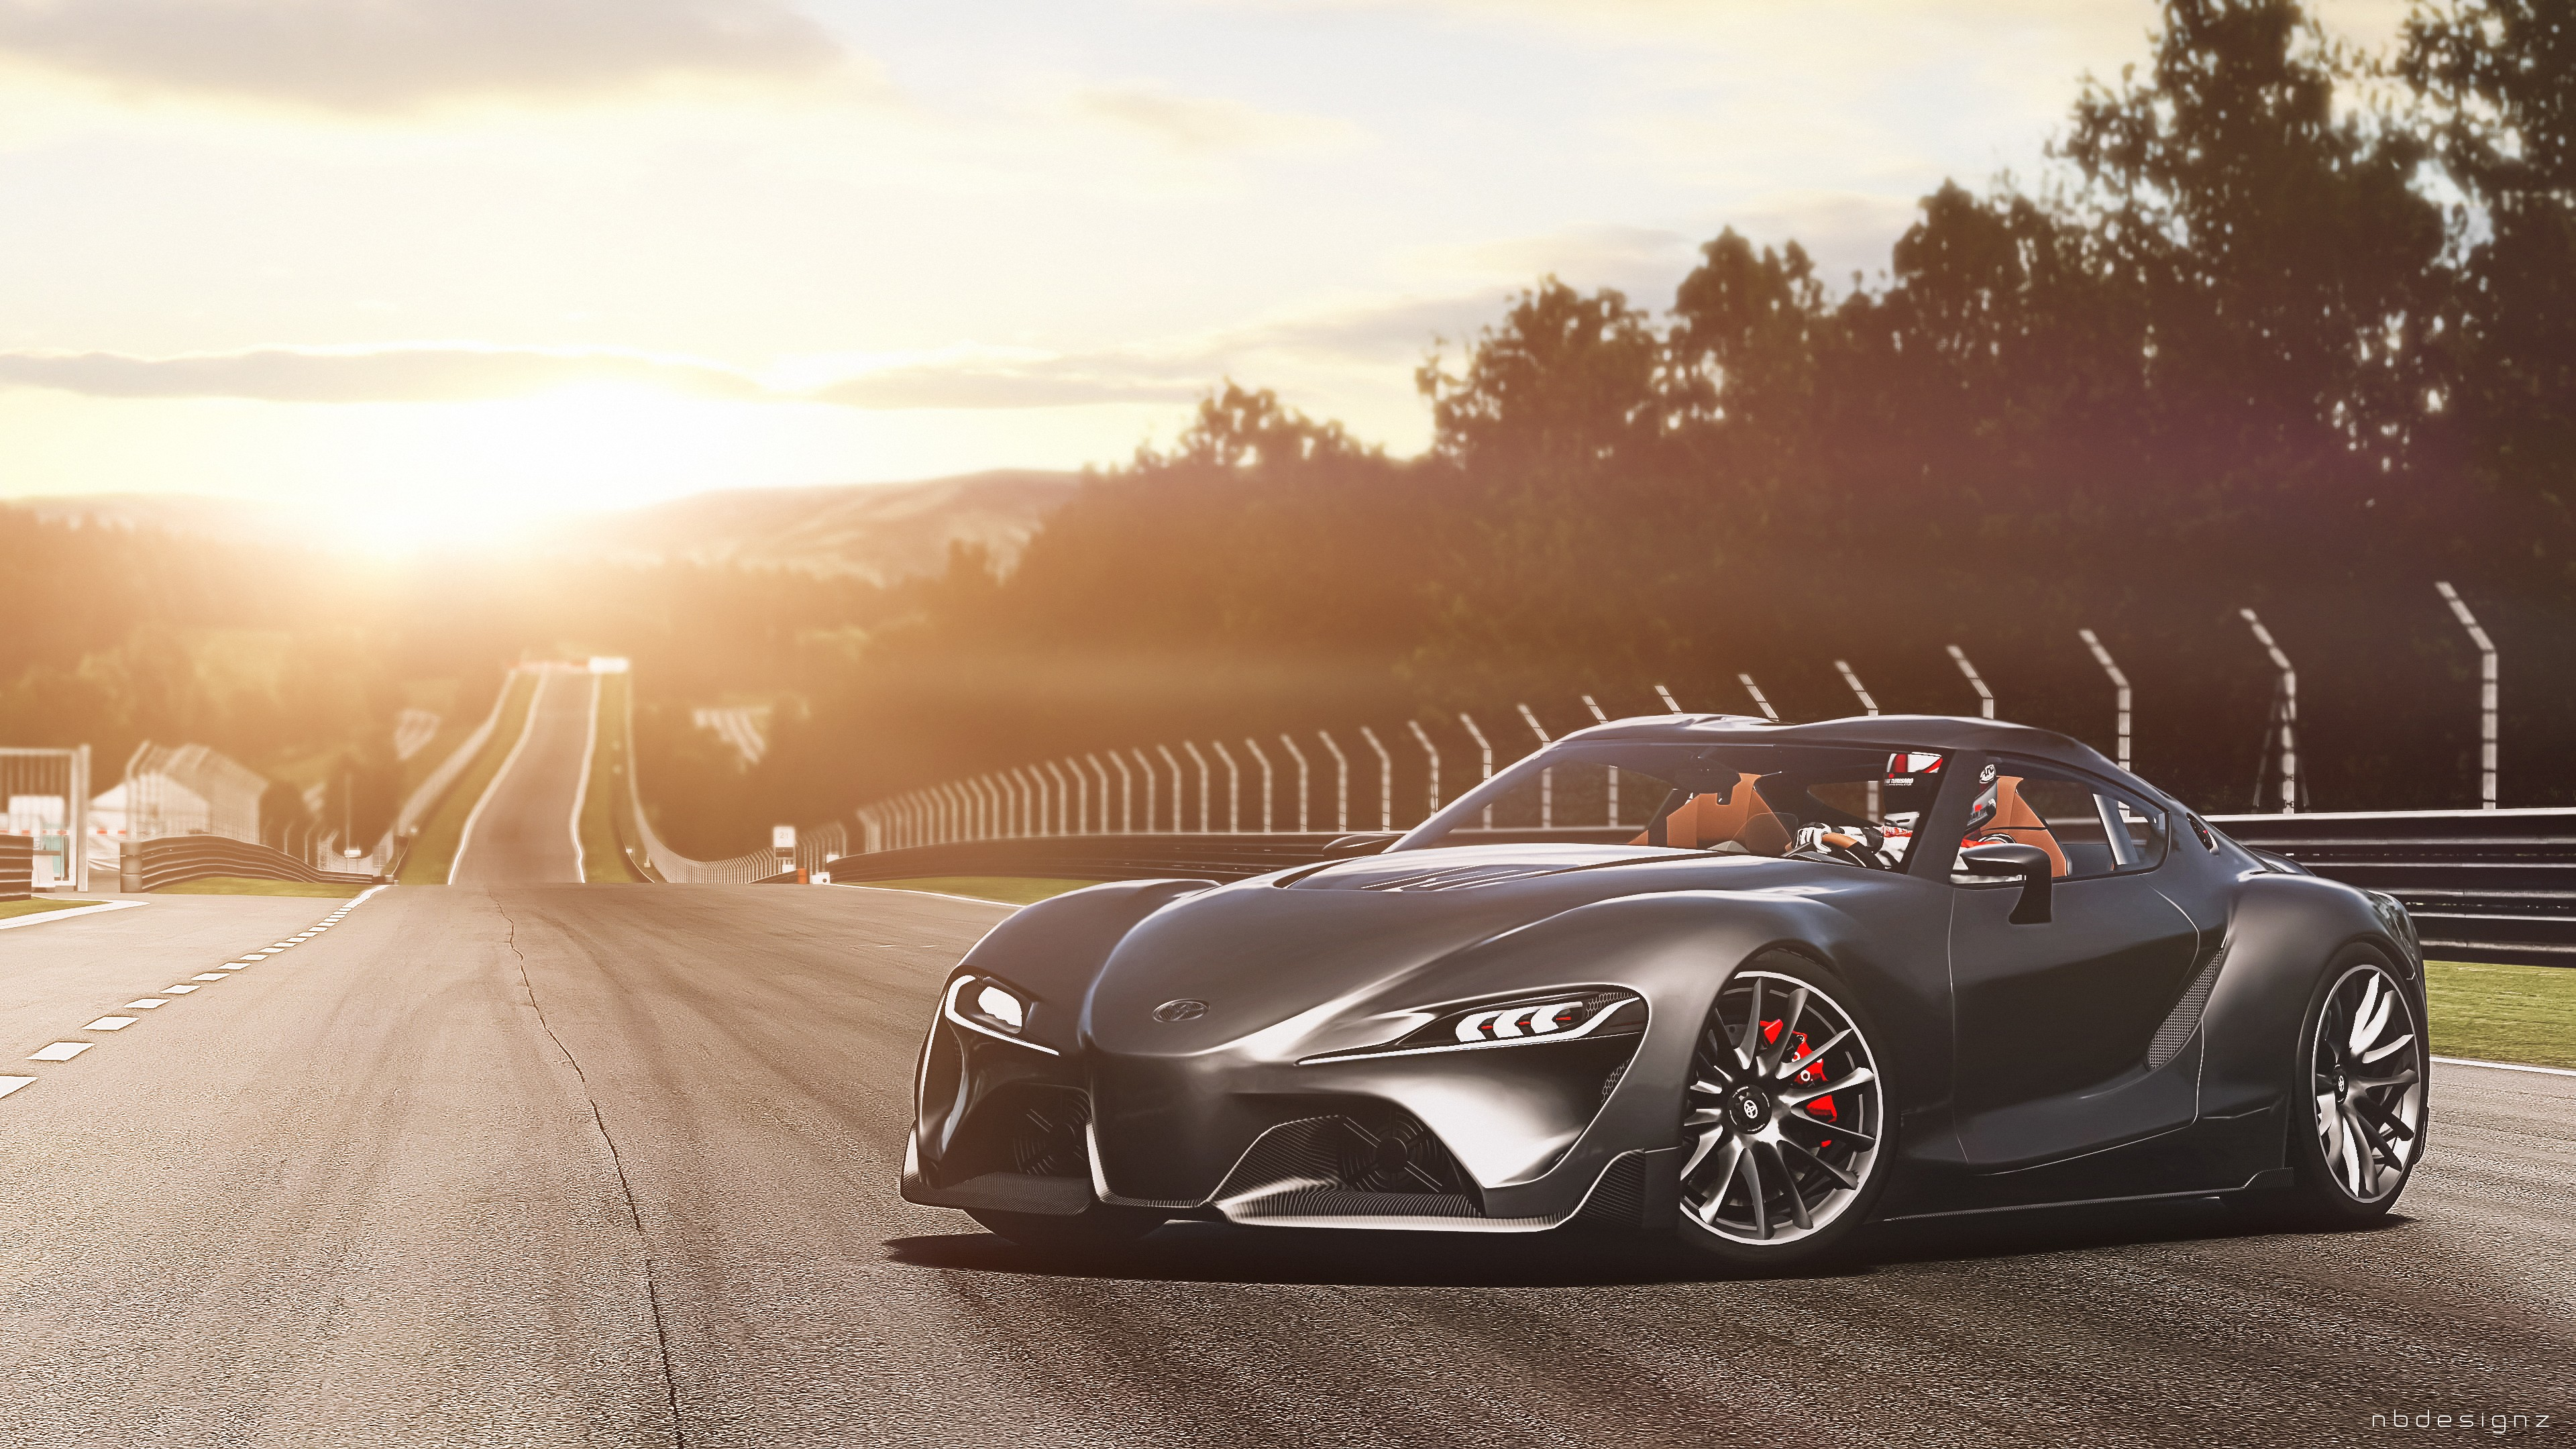 Toyota Ft 1 >> Wallpaper Toyota FT-1, hypercar, supercar, Cars & Bikes #11117